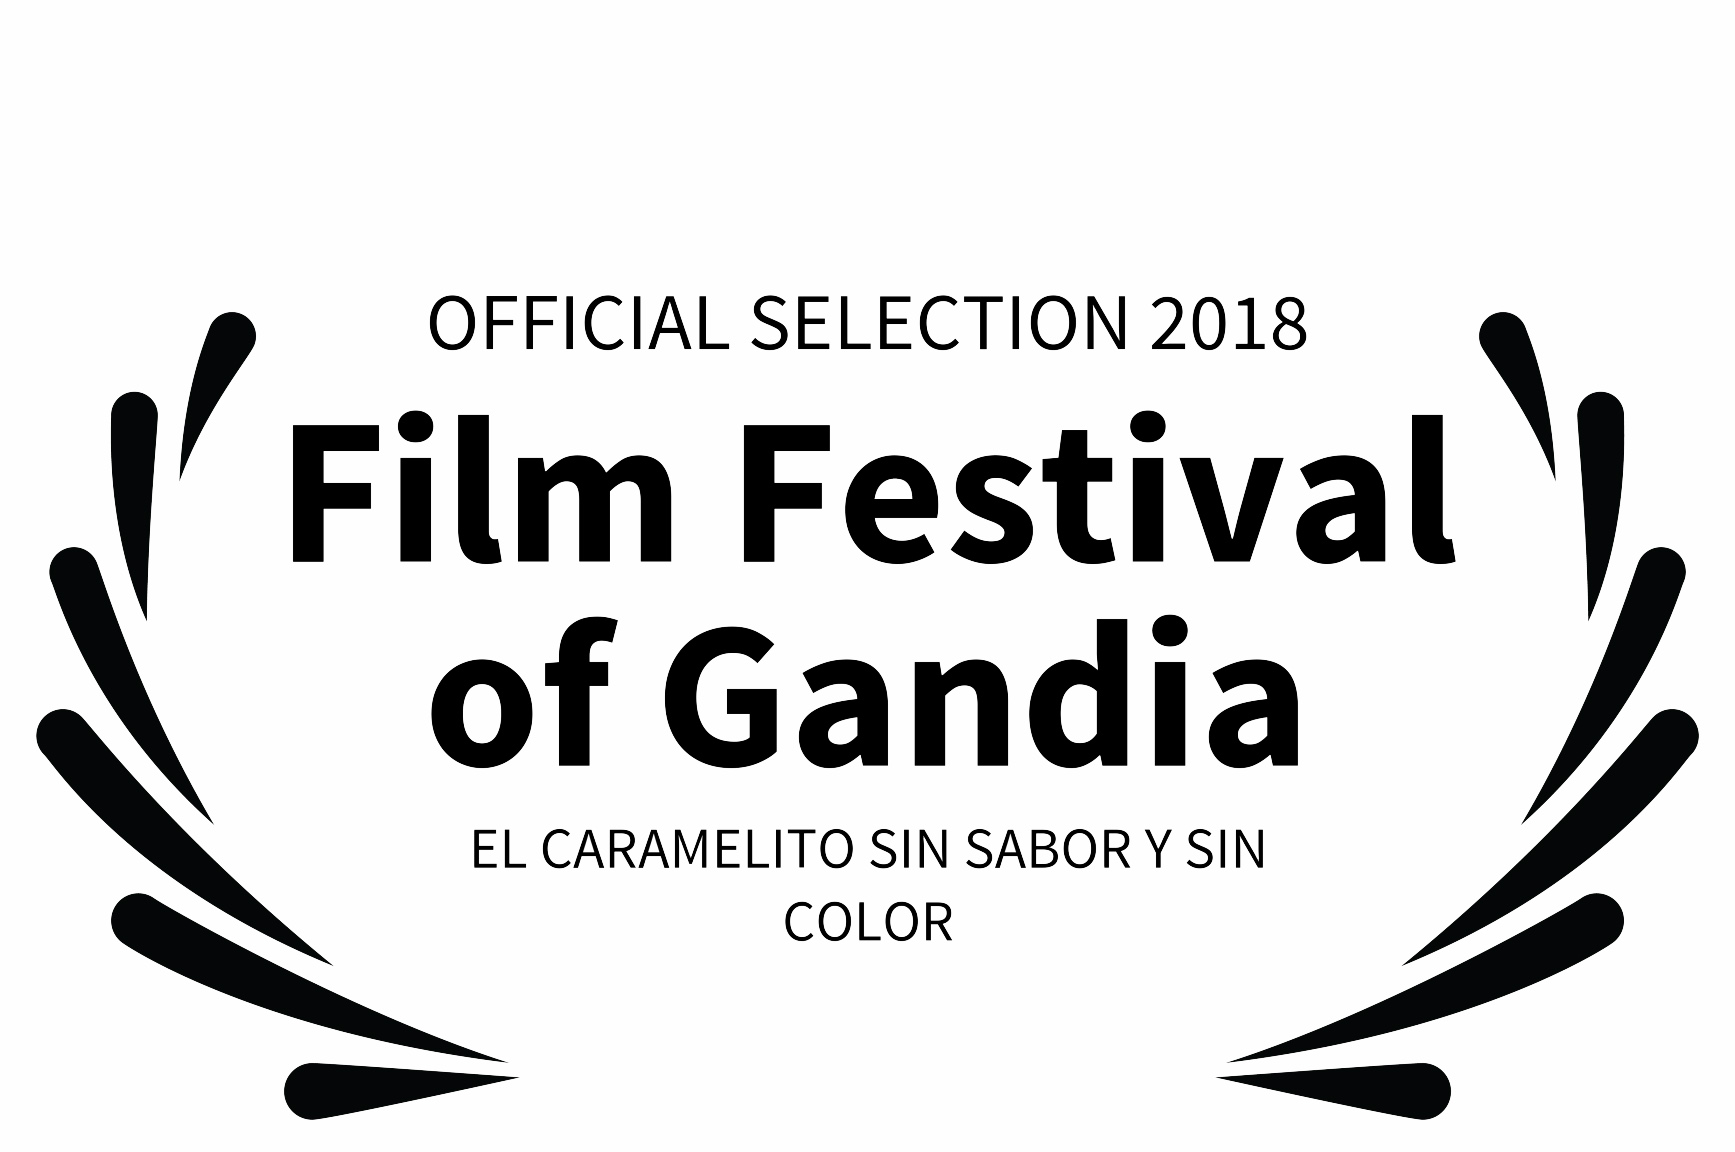 ELCARAMELITO-SELECTION 2018 - Film Festival of Gandia - EL CARAMELITO SIN SABOR Y SIN COLOR